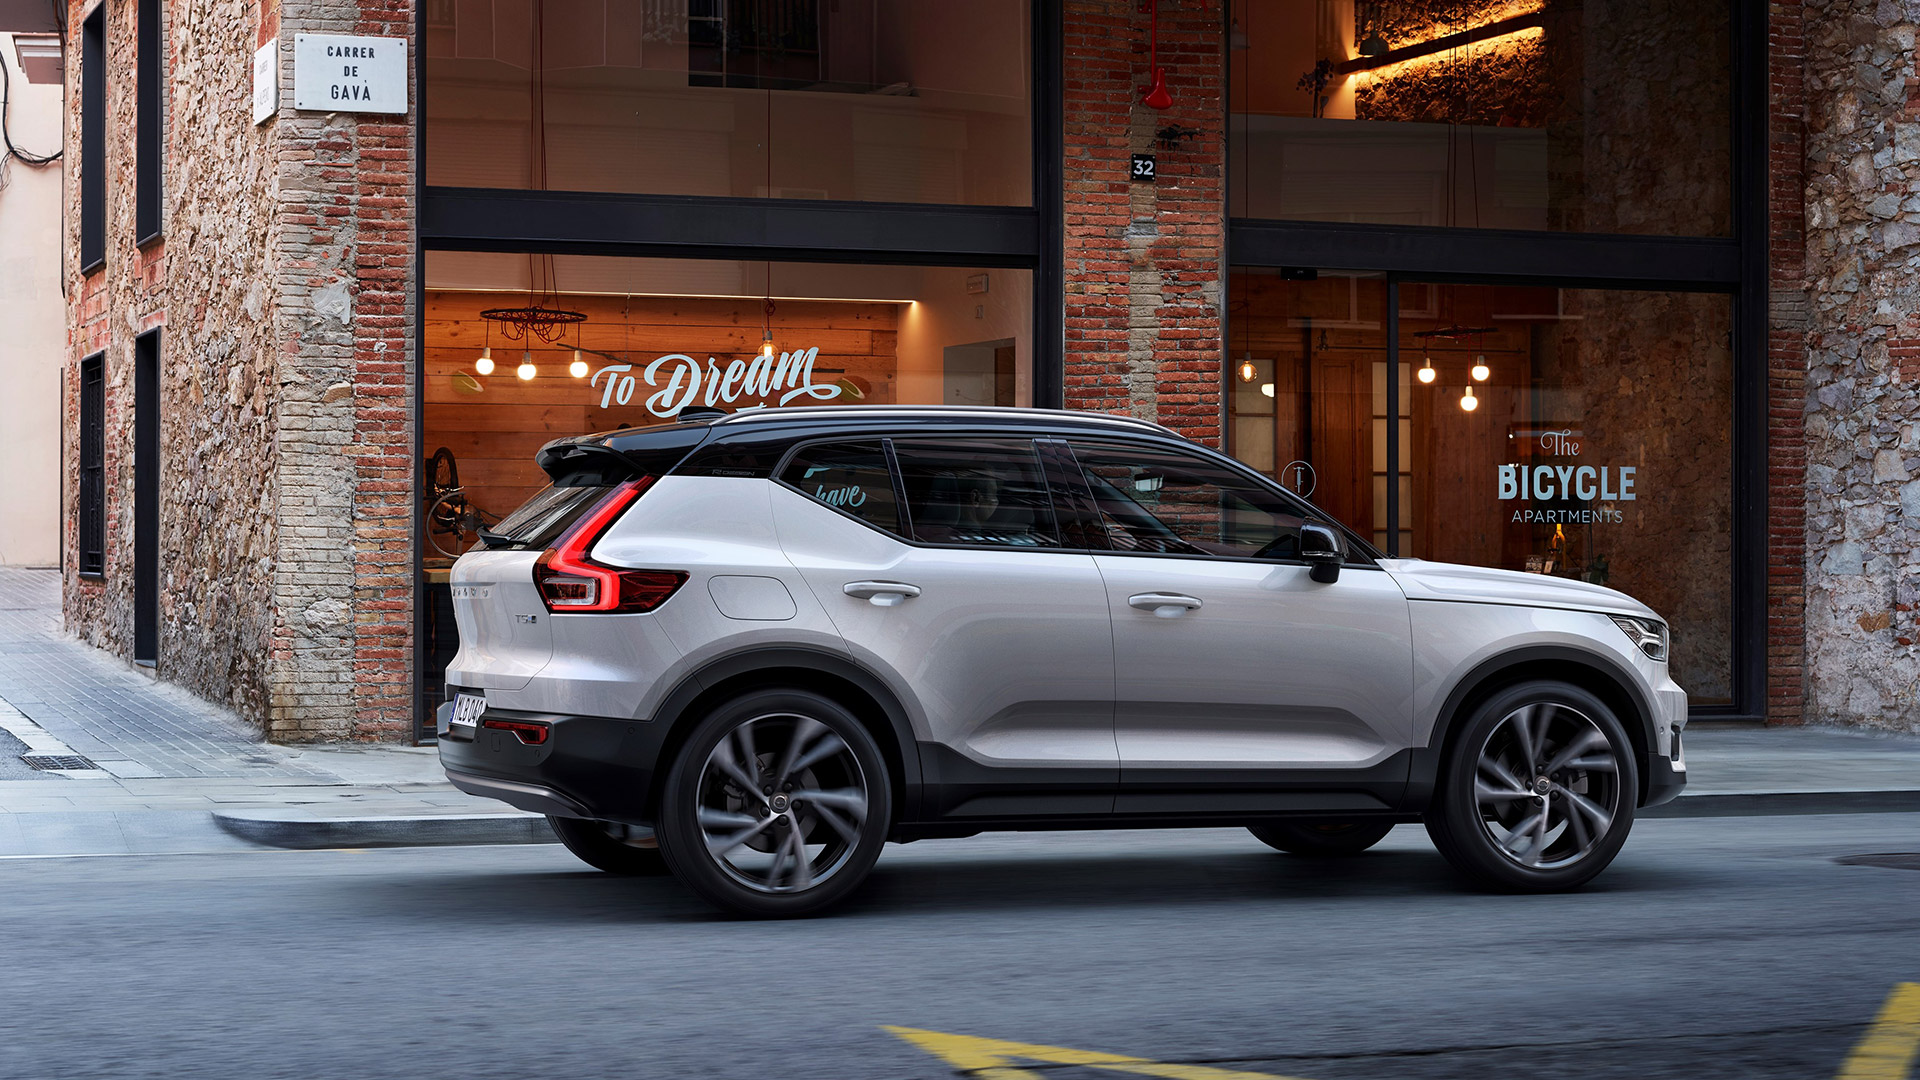 Volvo xc40 2017 D4 Exterior Car Photos - Overdrive